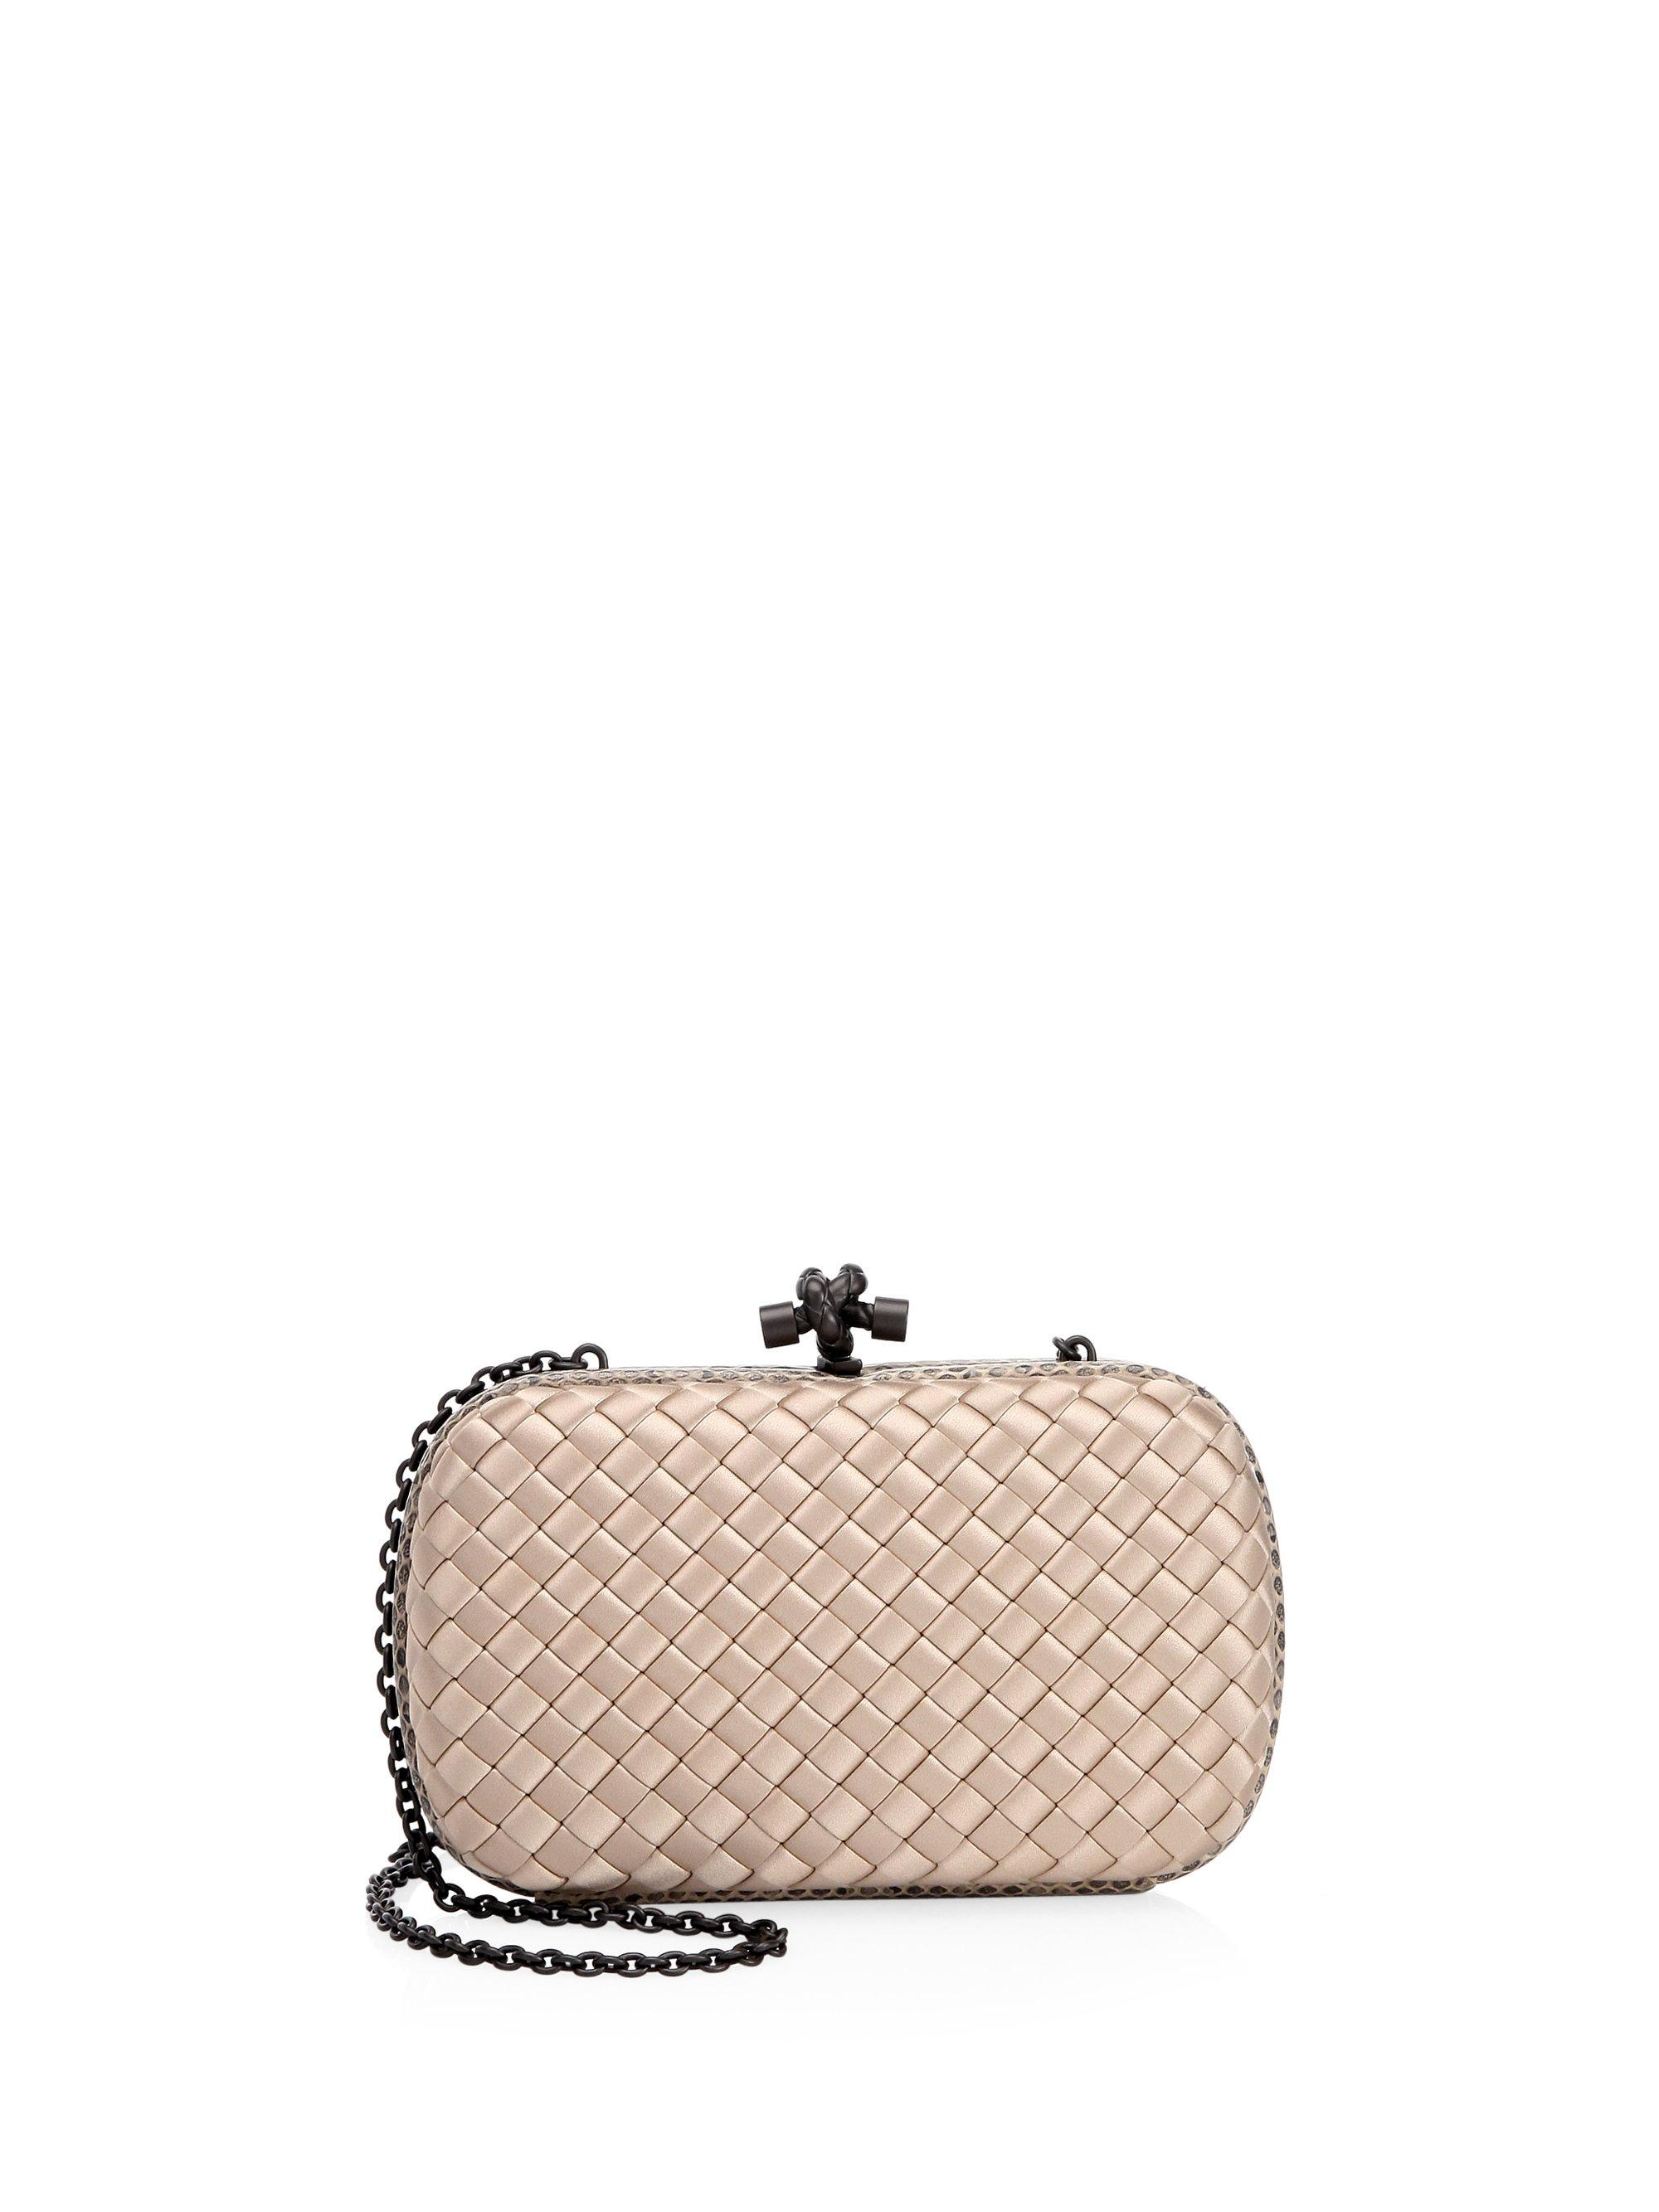 90f200bc6826 Bottega Veneta Knot Clutch Bag - Lyst